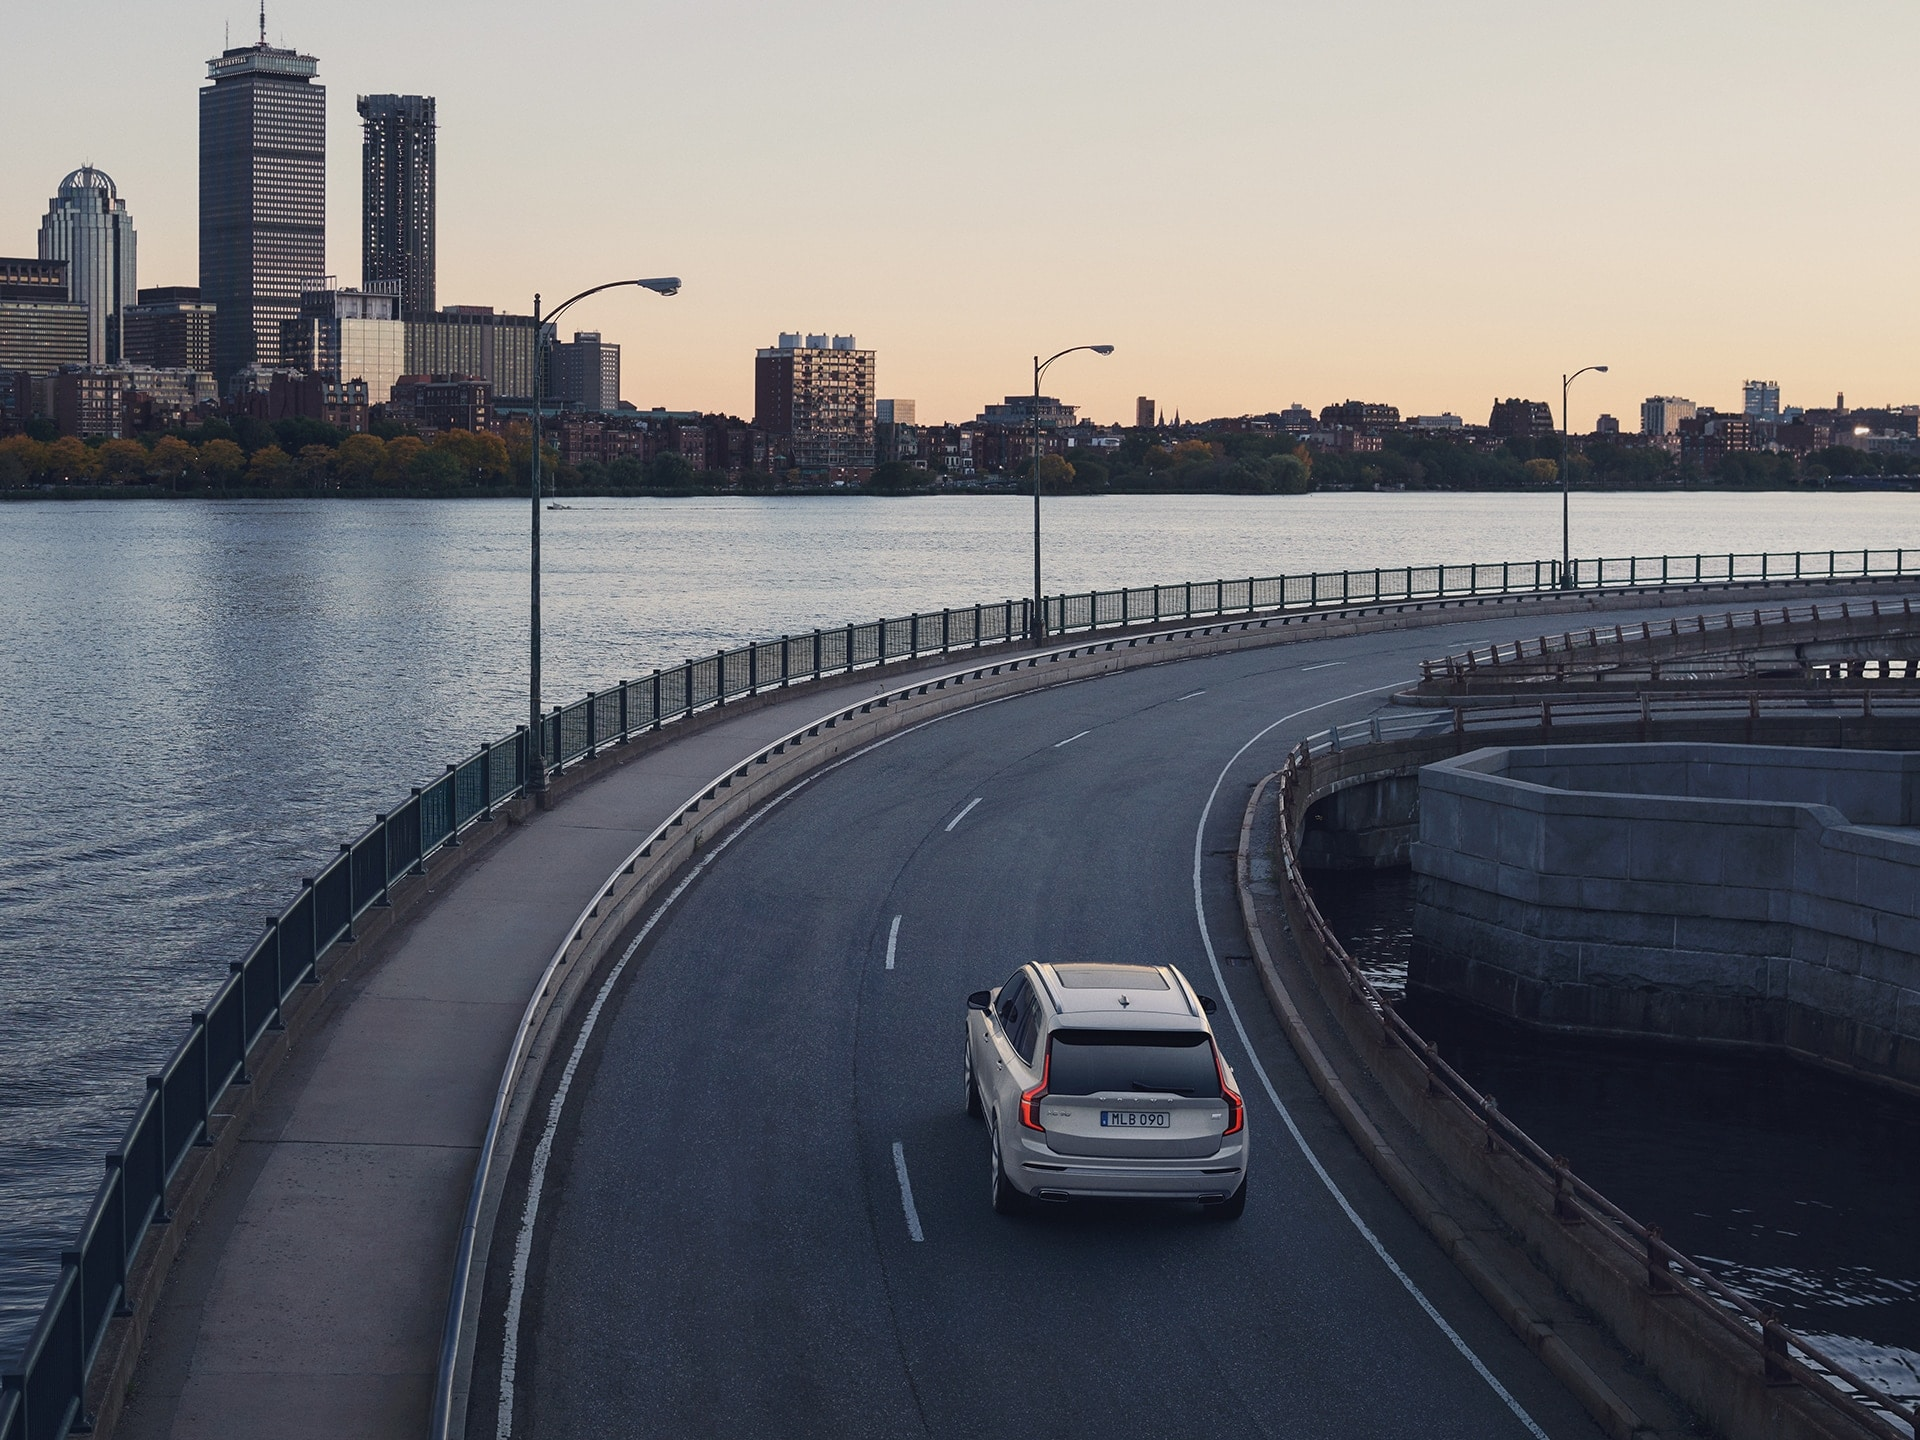 A Volvo XC90 Recharge follows a curve along with the water